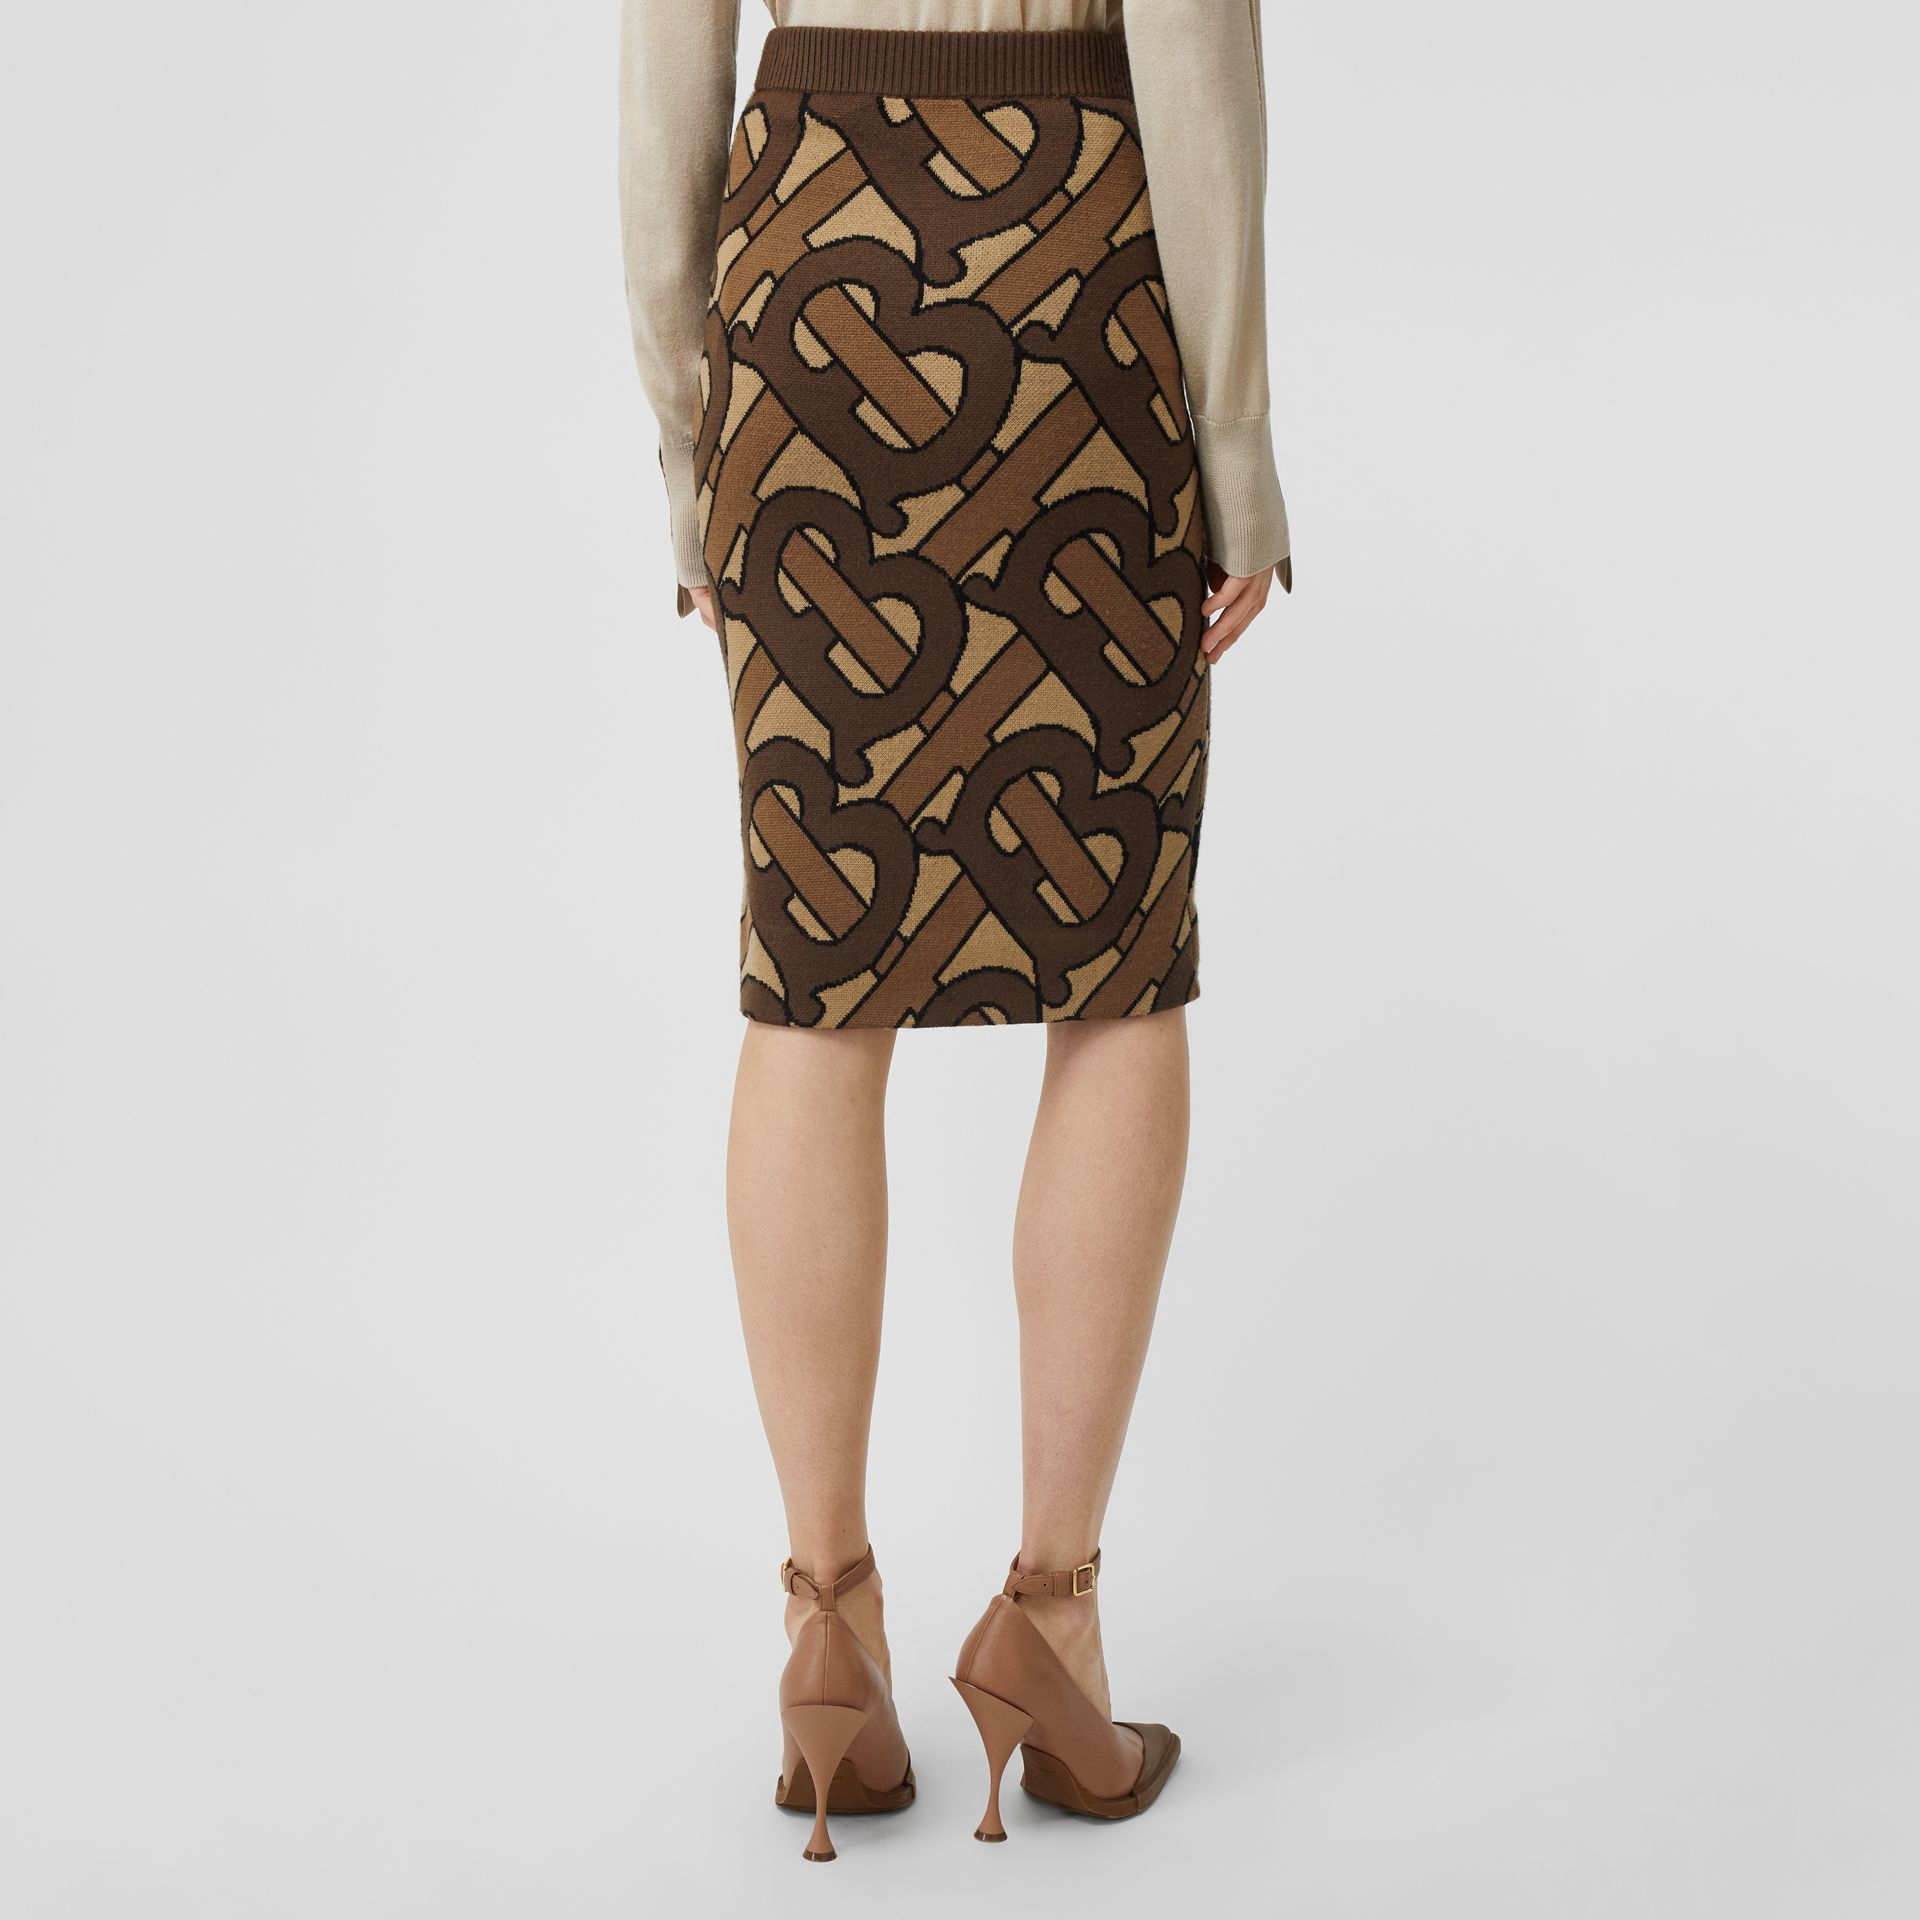 Monogram Intarsia Wool Pencil Skirt in Bridle Brown - Women | Burberry - gallery image 2